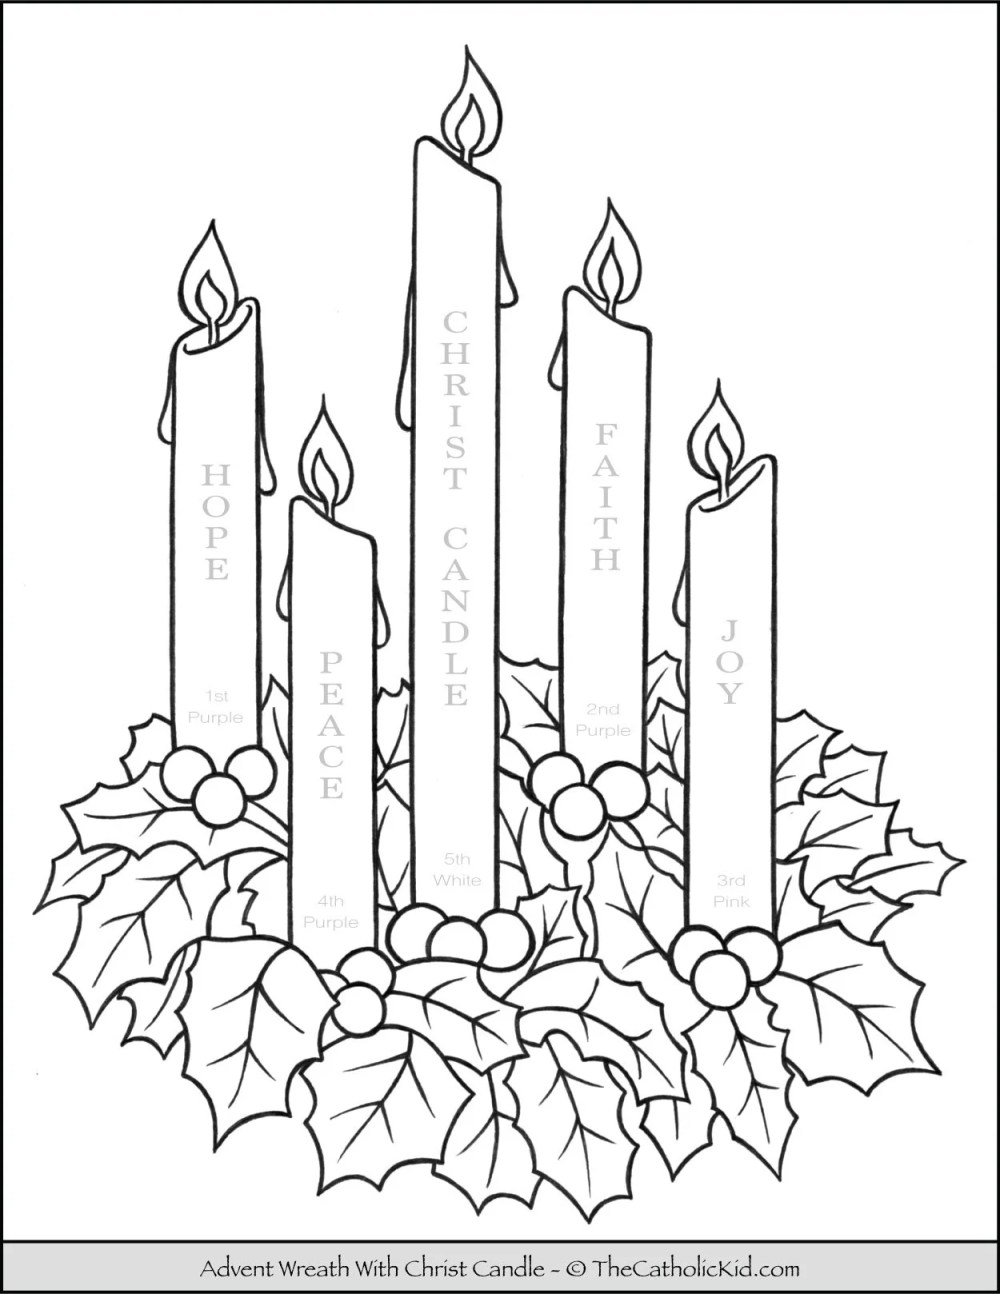 medium resolution of Advent Wreath Coloring Page With Candle Names \u0026 Meanings -  TheCatholicKid.com